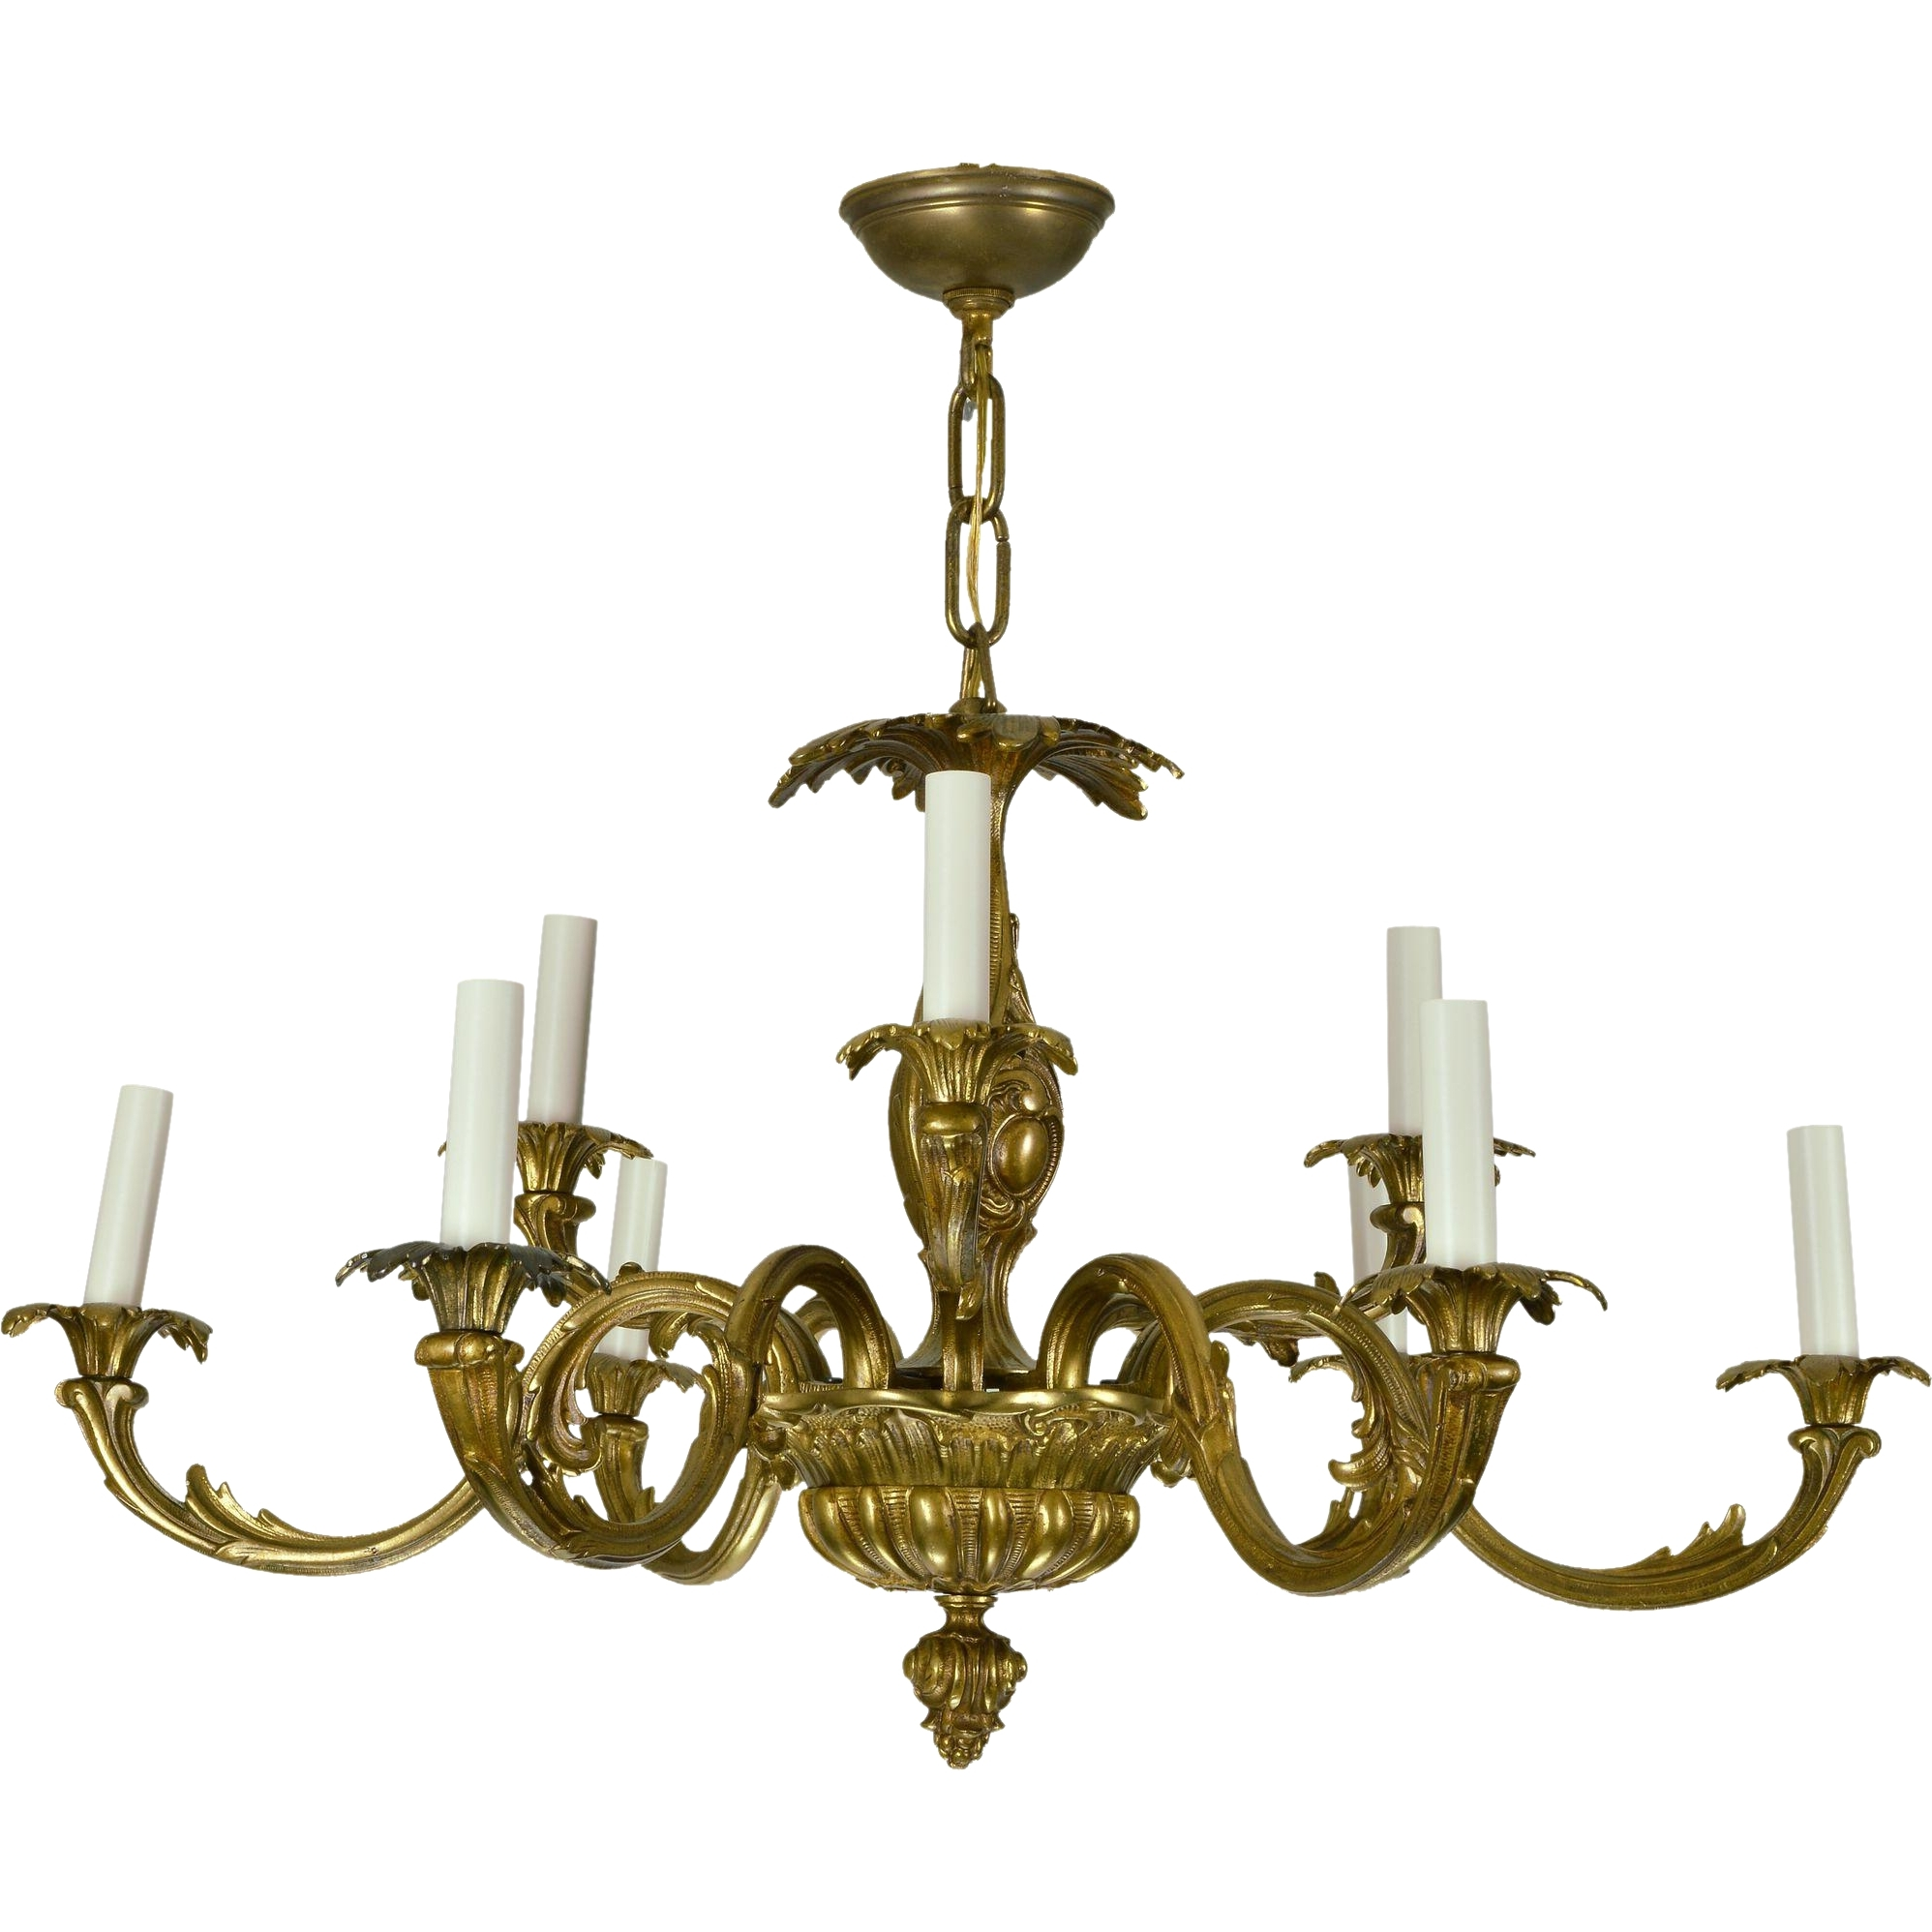 Home Design : Graceful Antique Brass Chandeliers Vintage Chandelier Throughout Most Recently Released Old Brass Chandeliers (View 8 of 20)